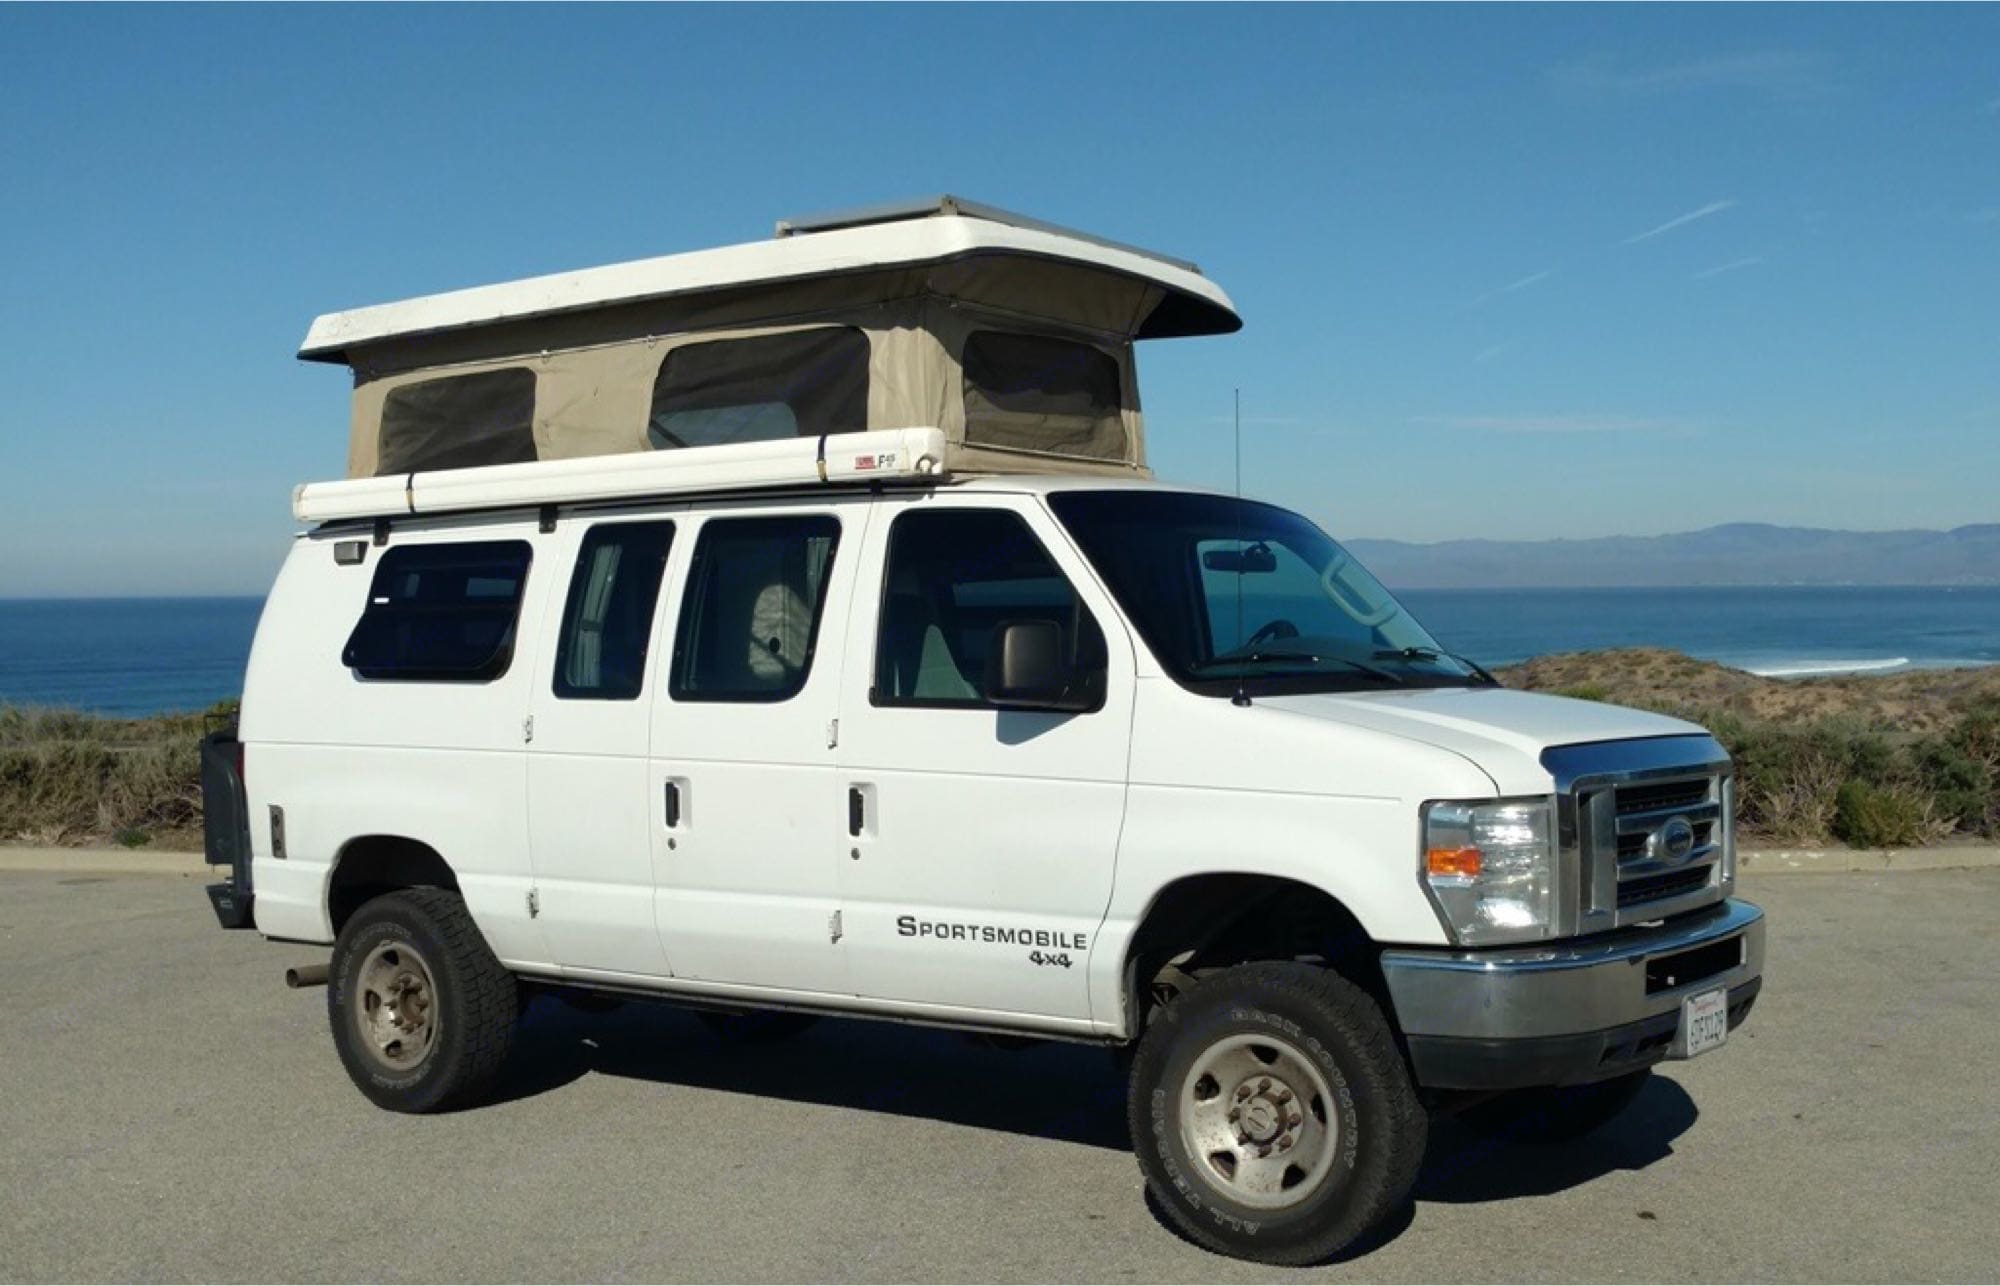 Go stealth or pop-up, it's up to you! Penthouse roof offers un-zippable windows to create a perfect cross breeze and view.. Sportsmobile E250 Hd Regular Length 2008